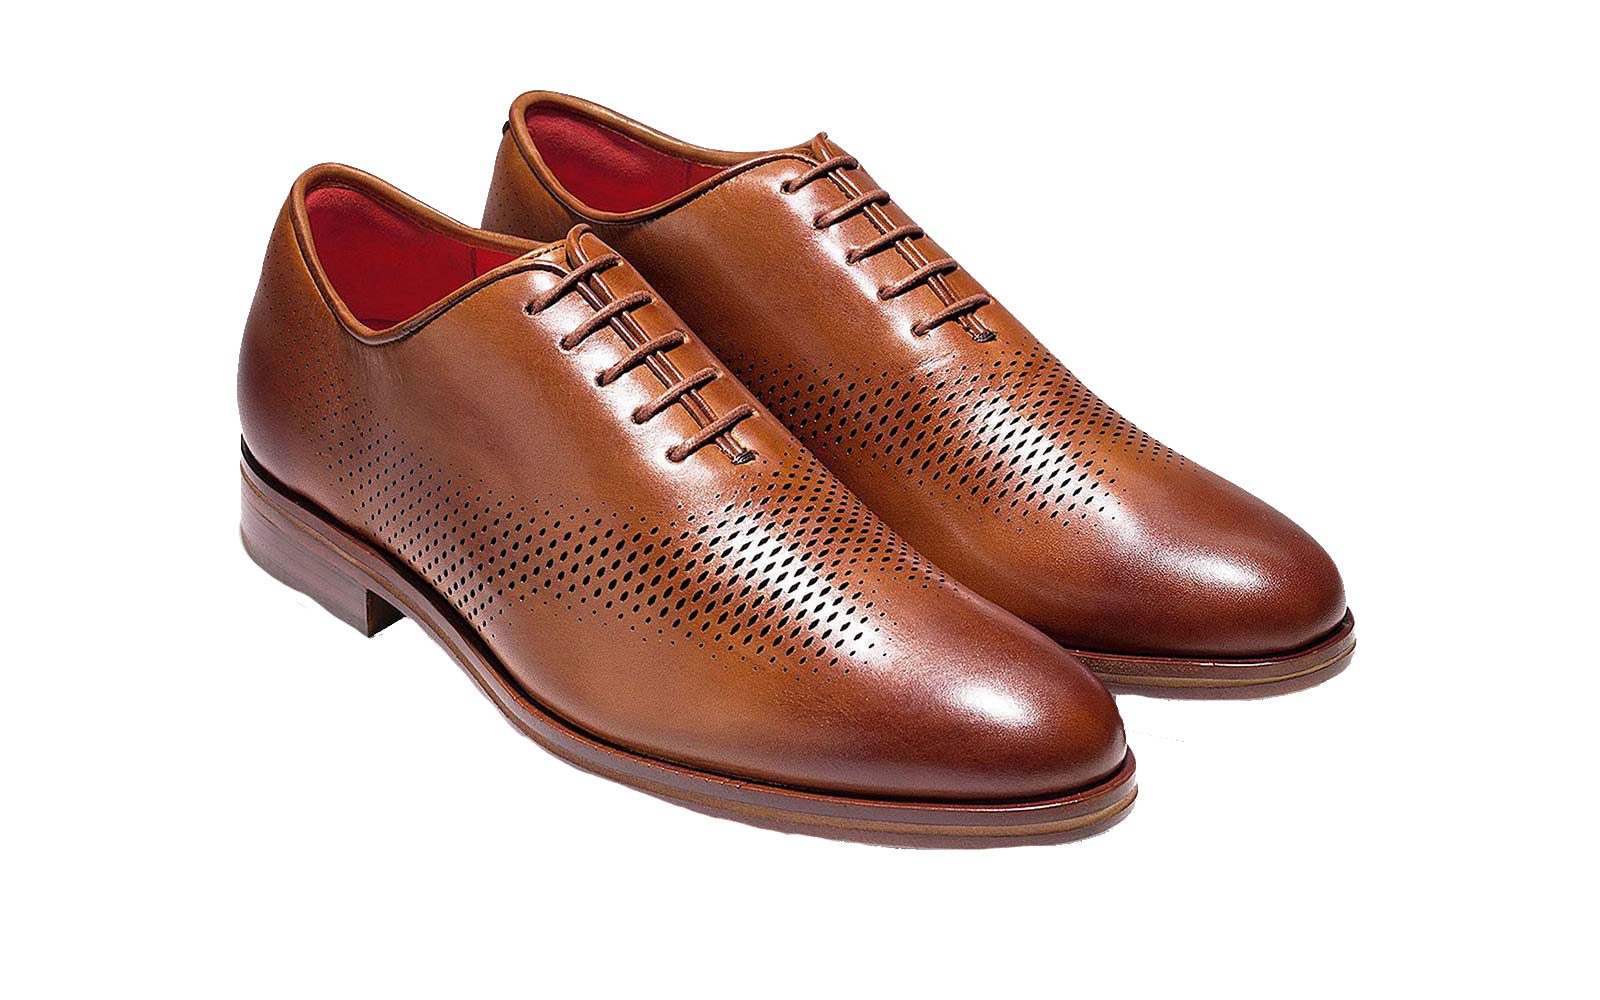 caaf4e6bcf83 The 12 Most Comfortable Dress Shoes for Men